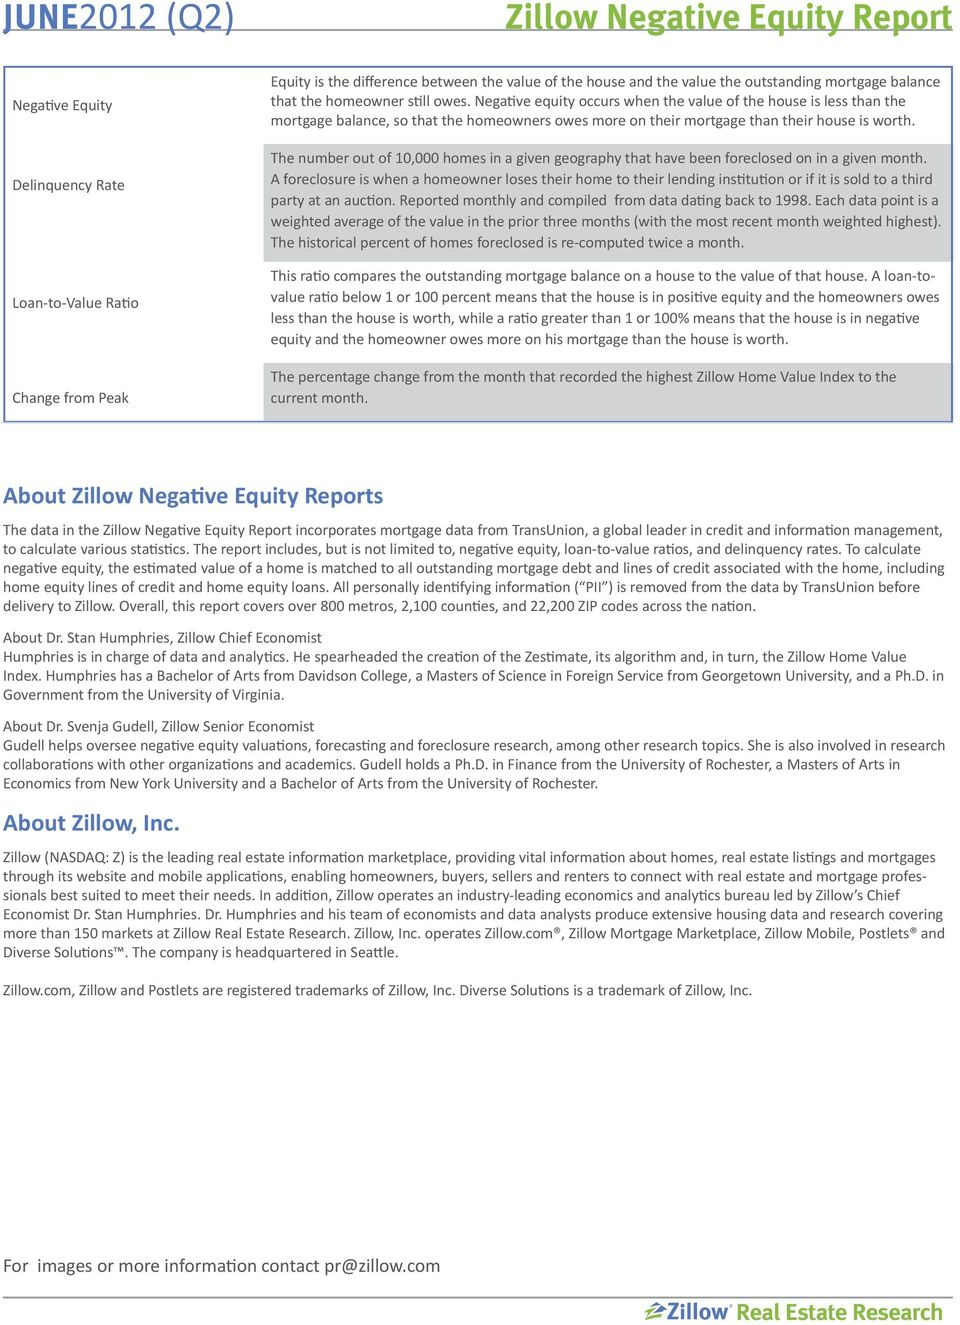 Zillow Negative Equity Report - PDF